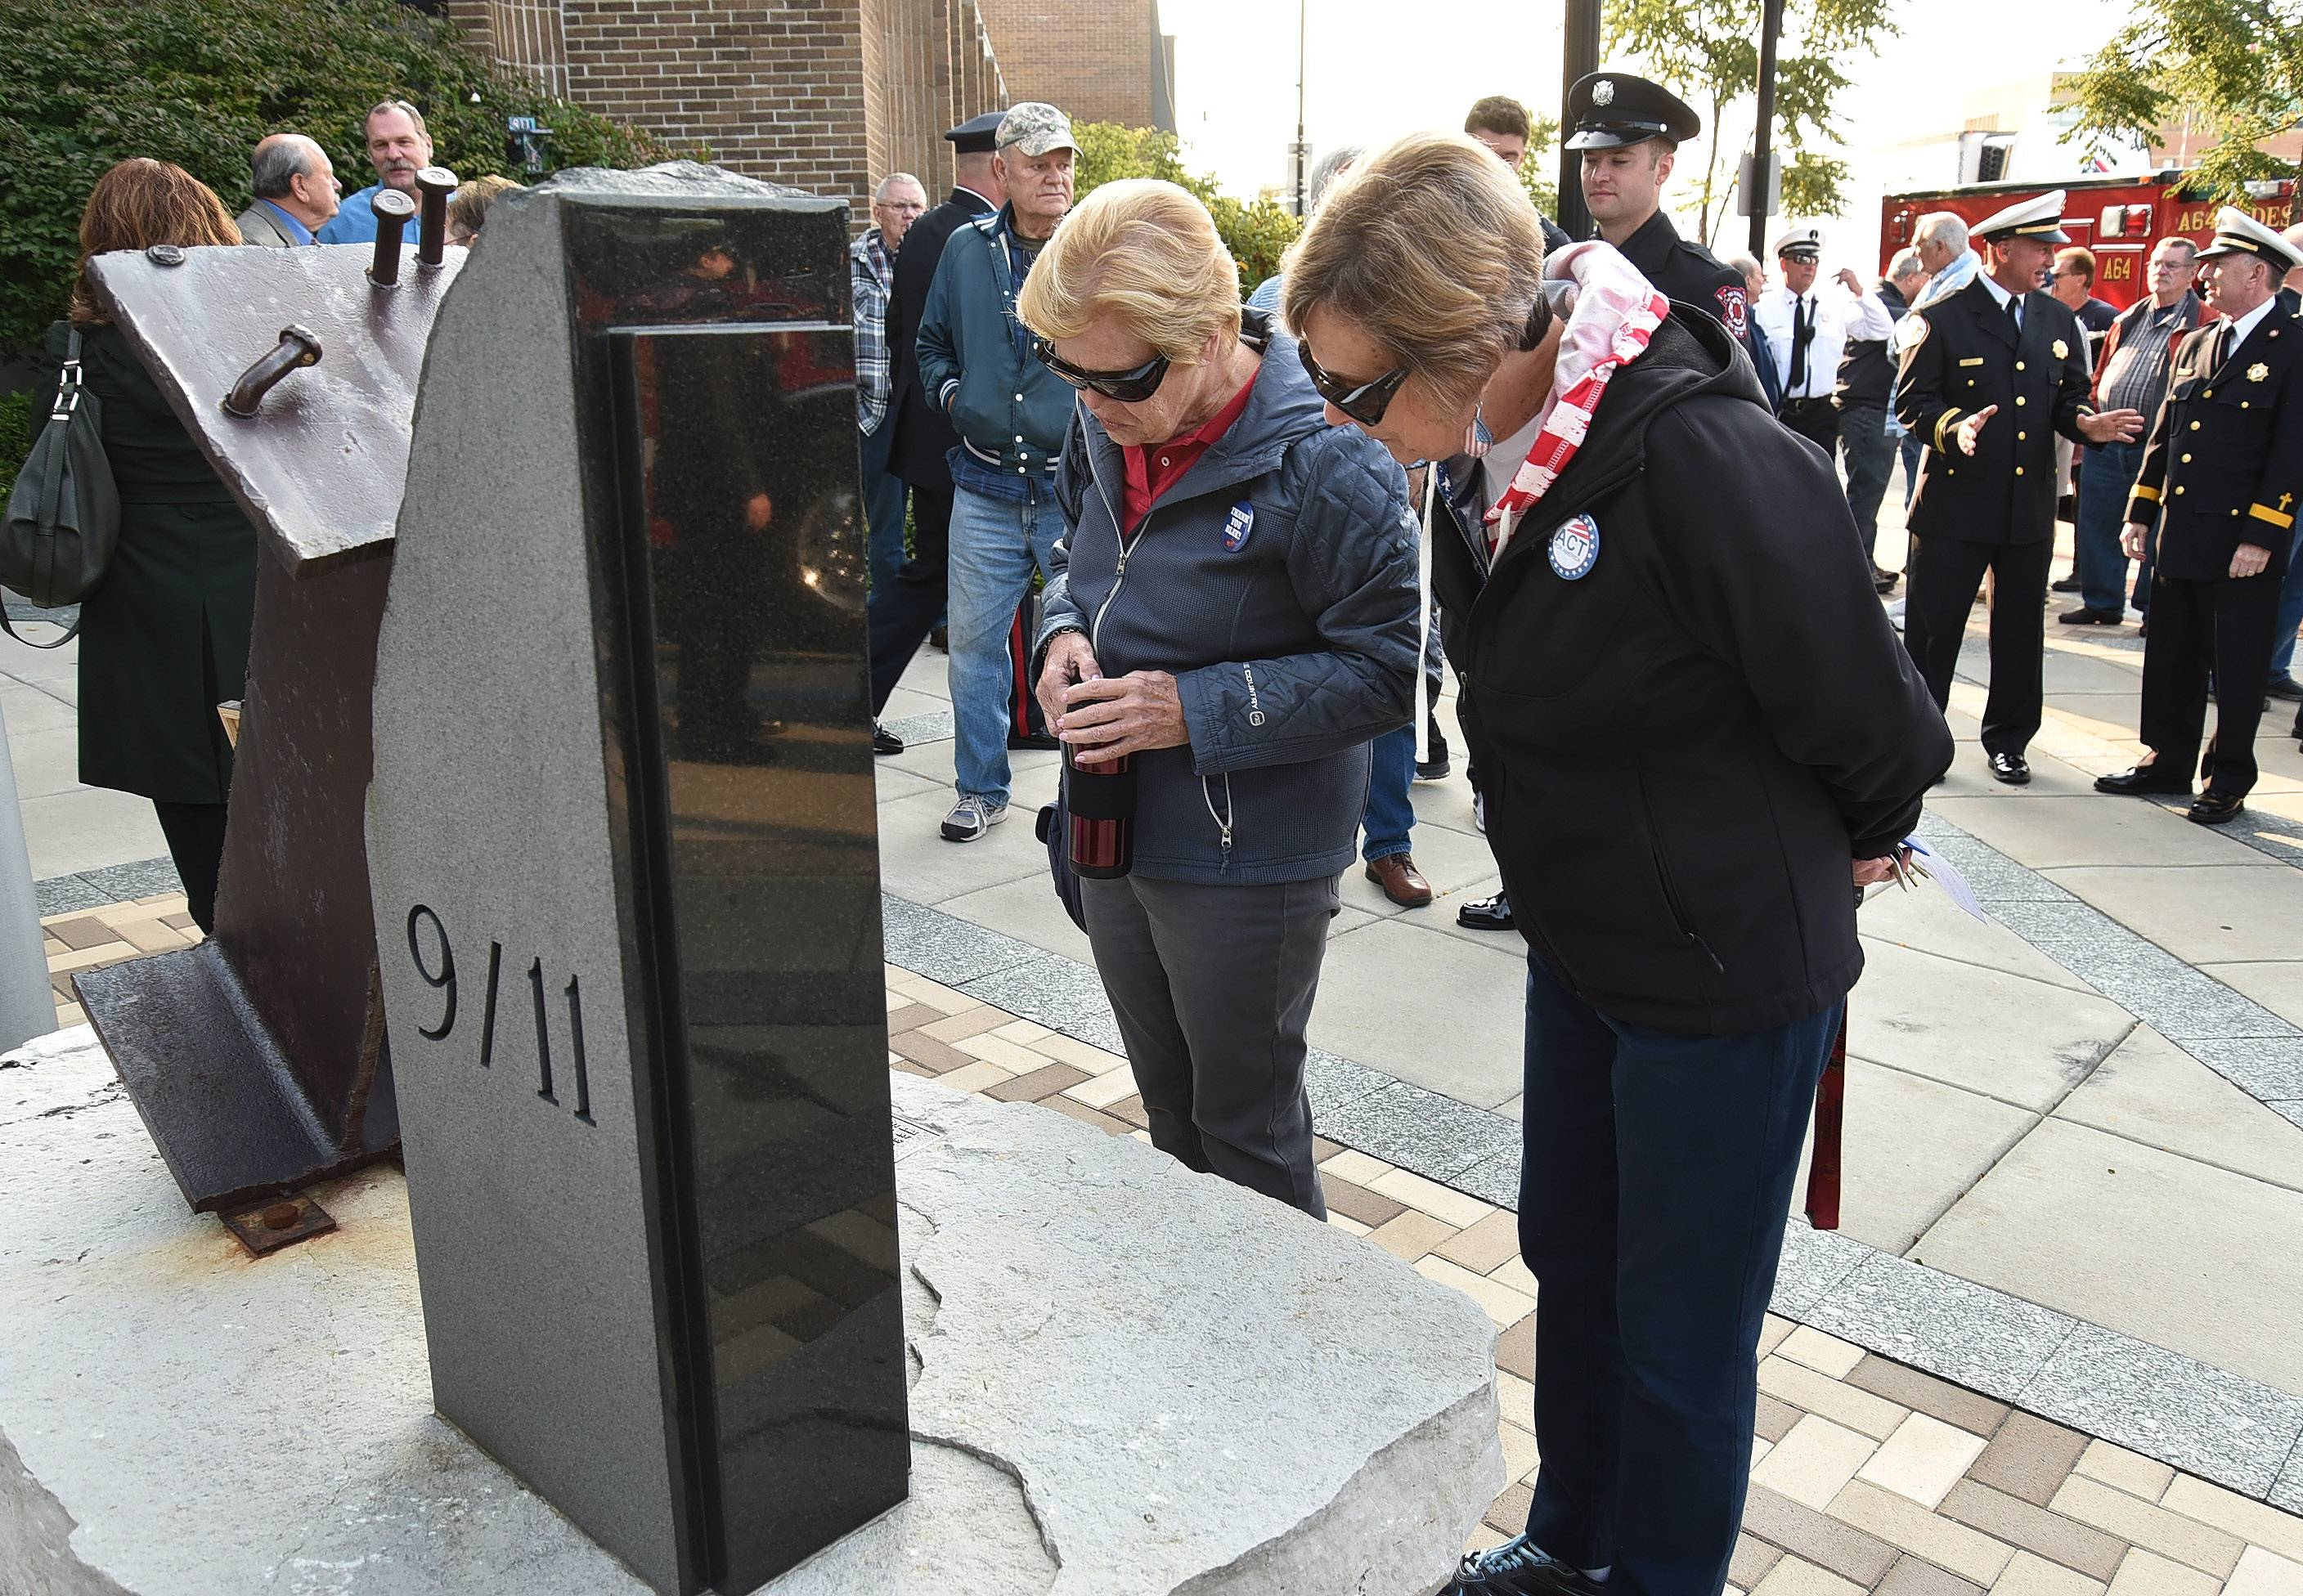 Sara Schmidt, left, and Fran Volpe take a closer look at the Des Plaines 9/11 memorial during the Sept. 11 remembrance ceremony at city hall.